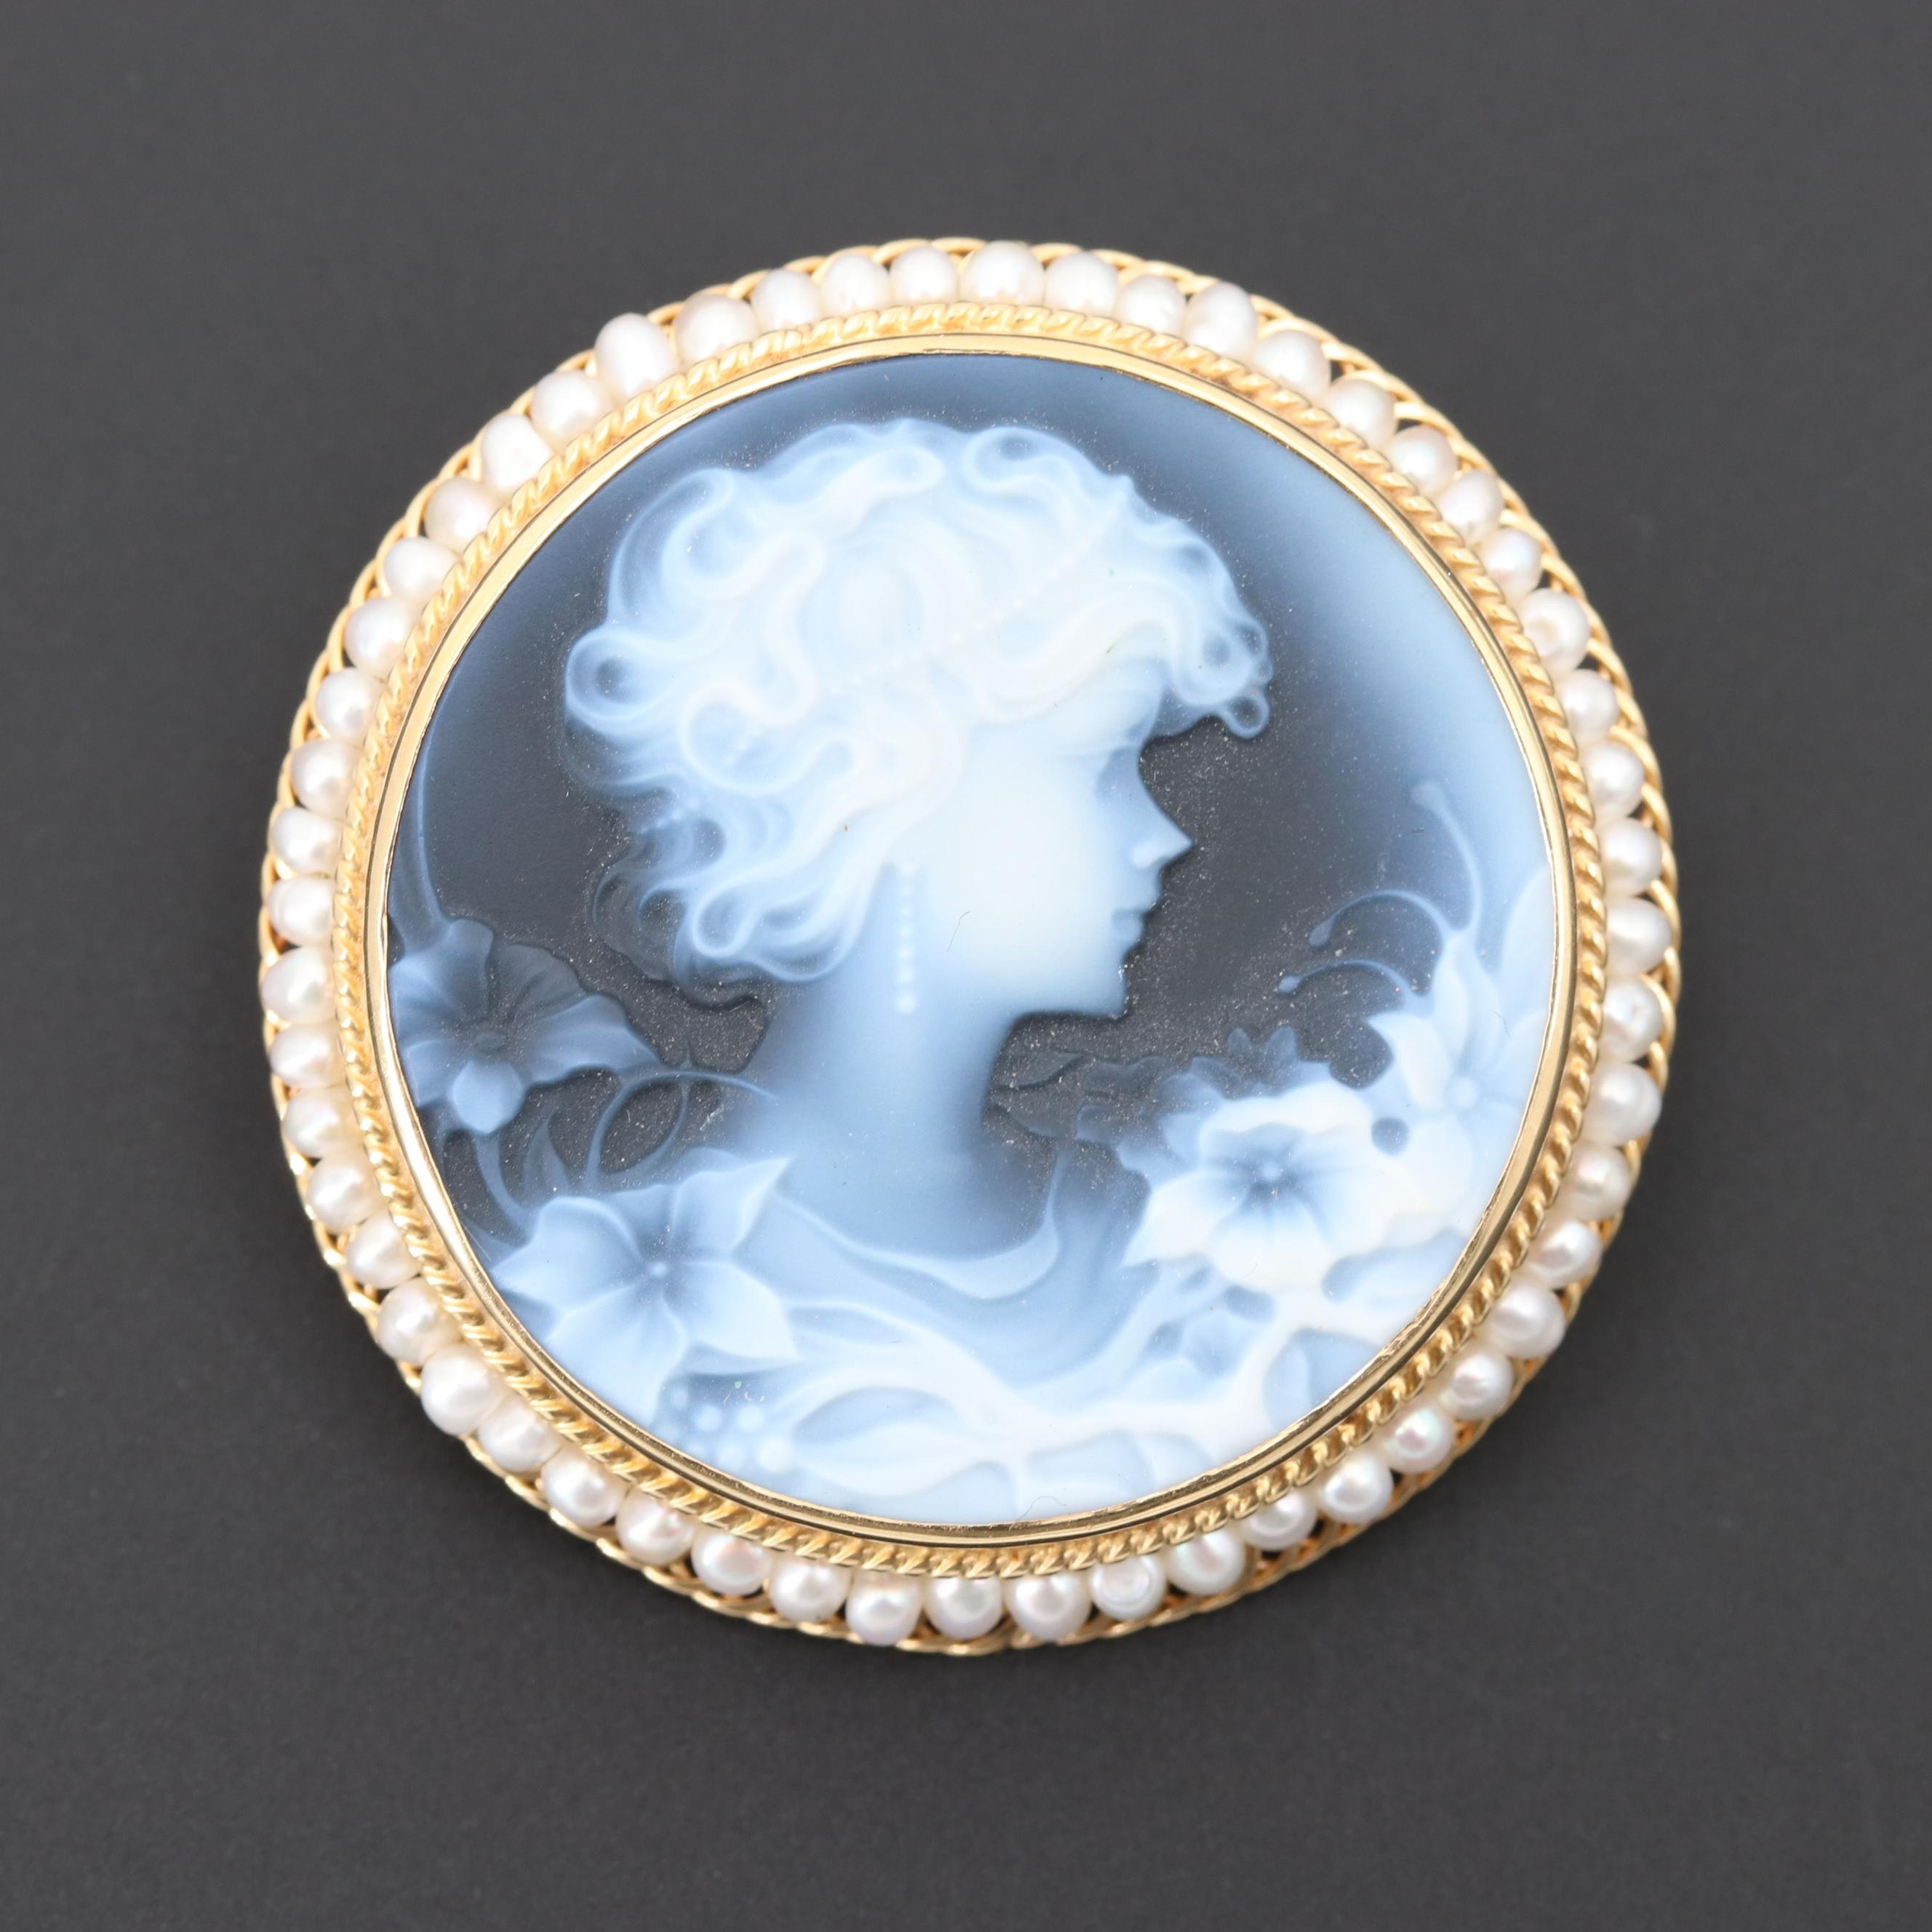 18K Yellow Gold Onyx and Cultured Pearl Cameo Converter Brooch